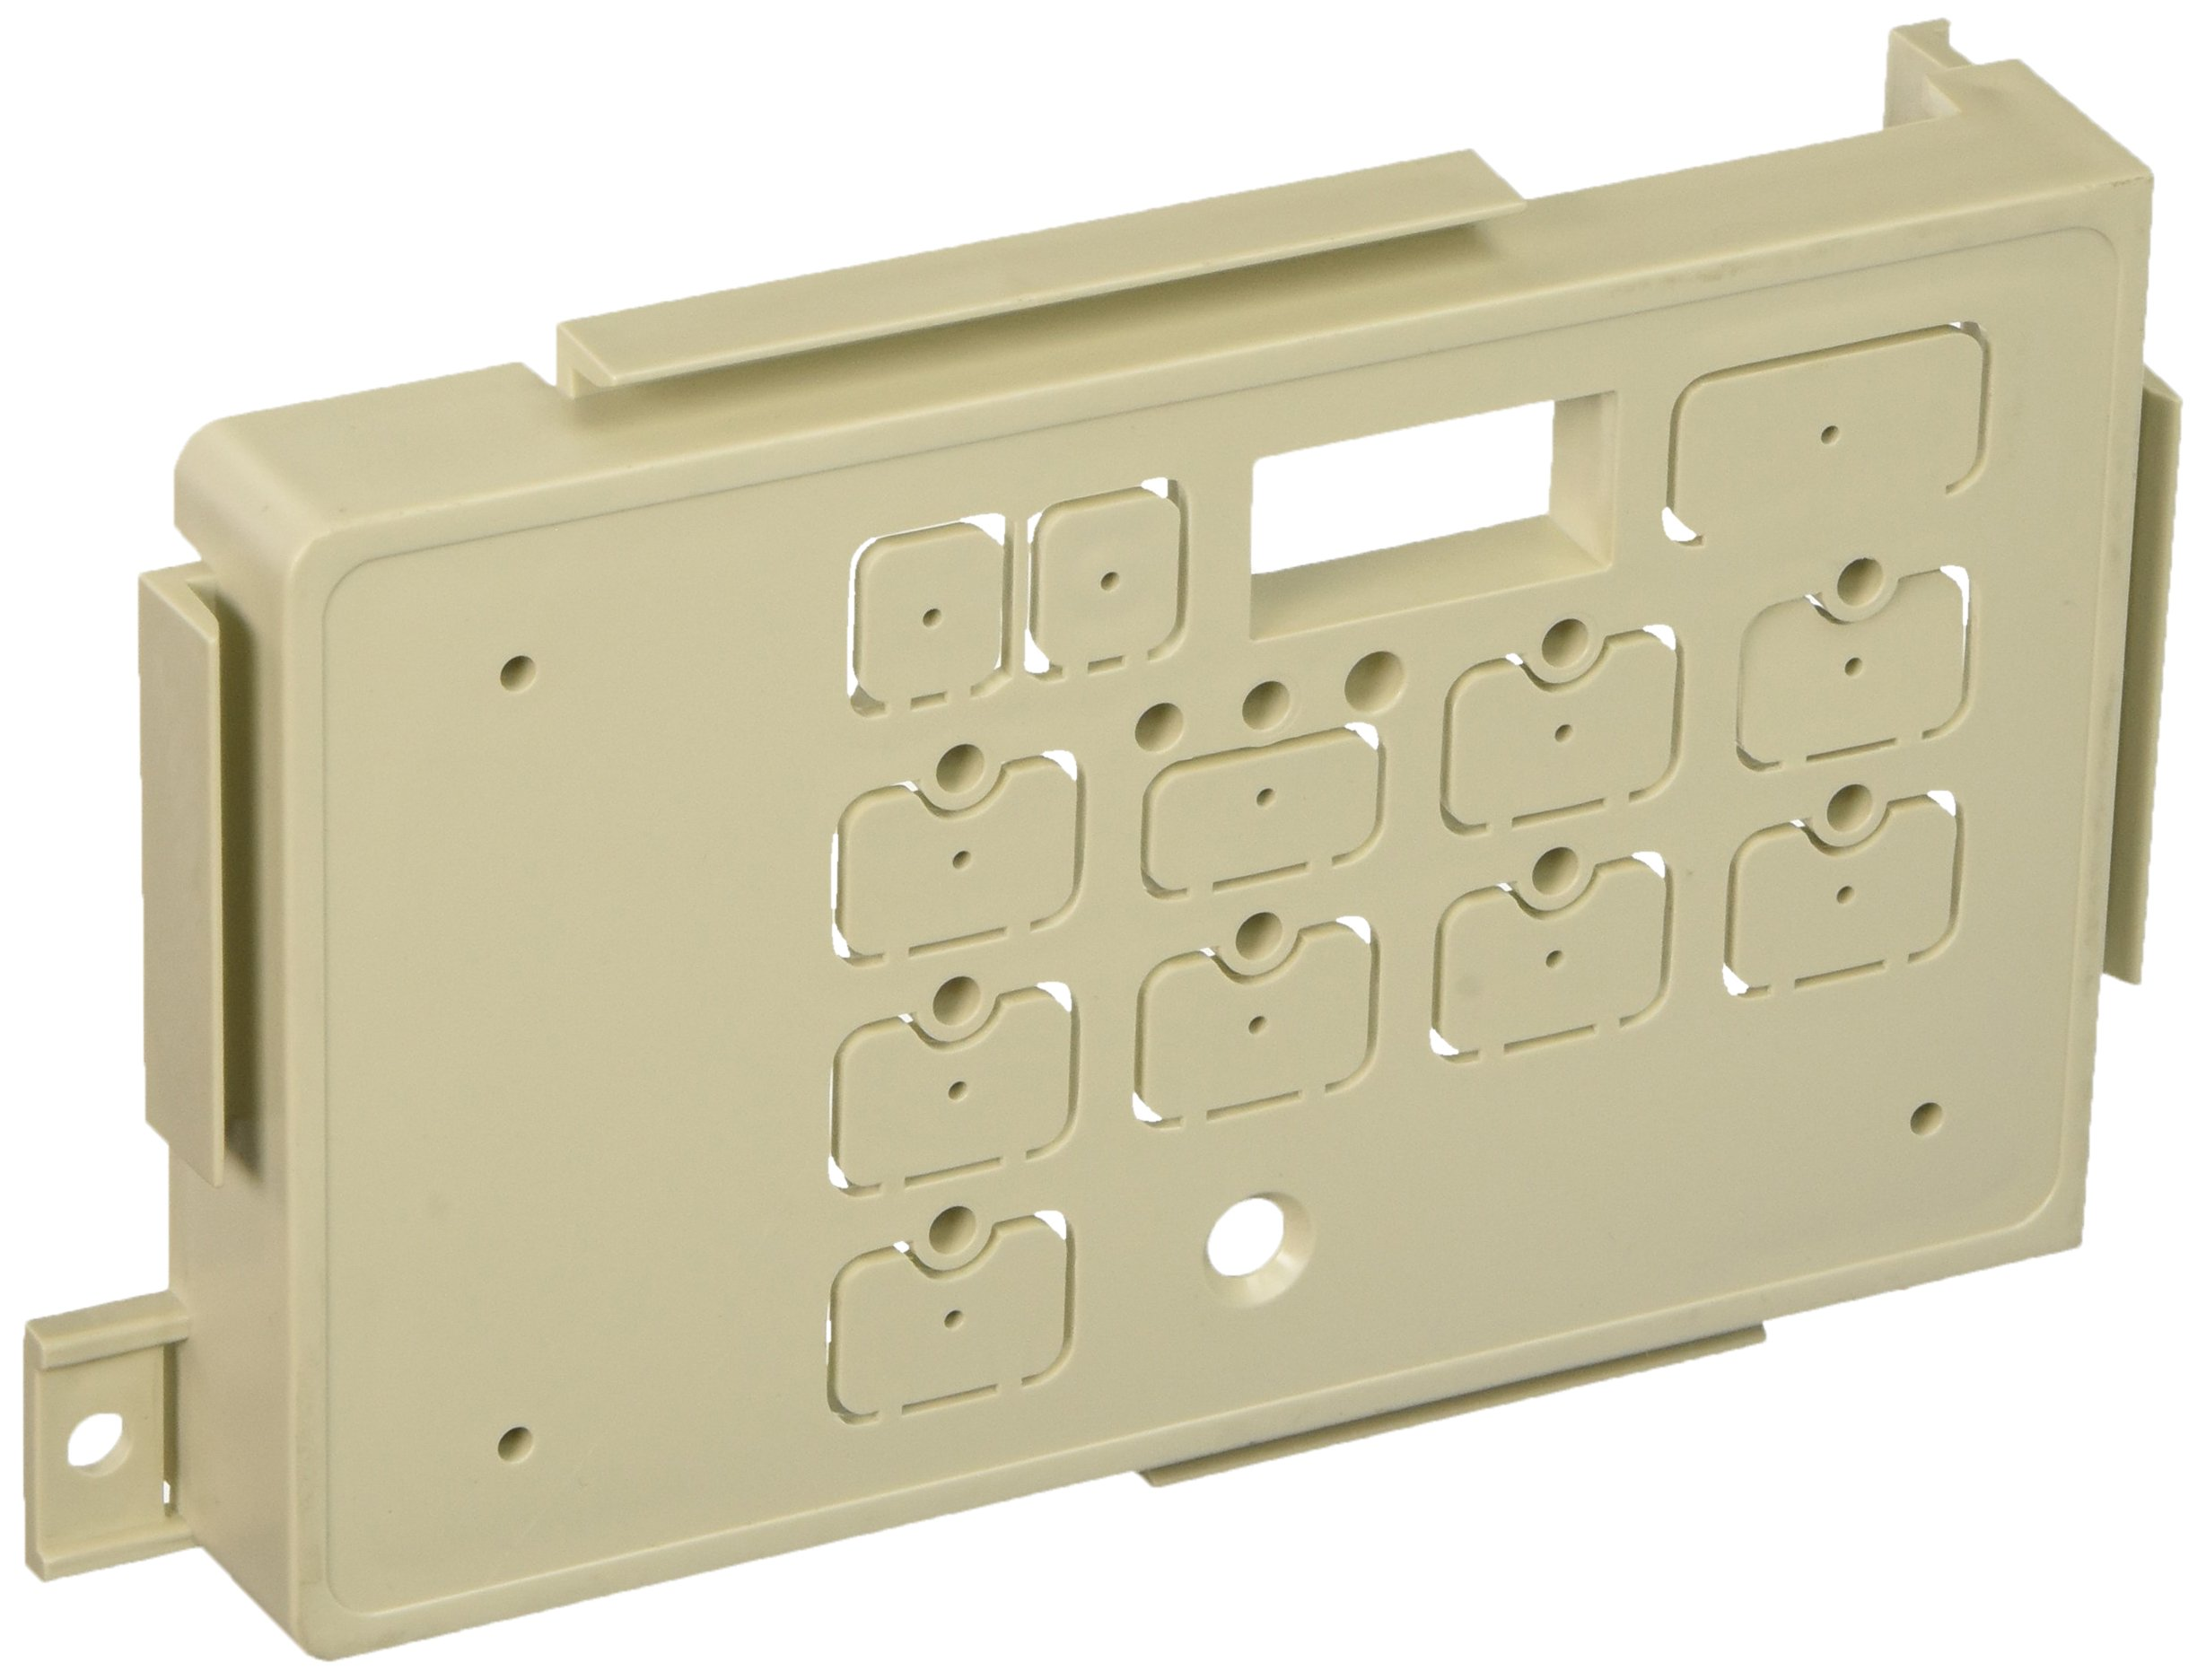 Frigidaire 309369701 Air Conditioner Control Panel by Frigidaire